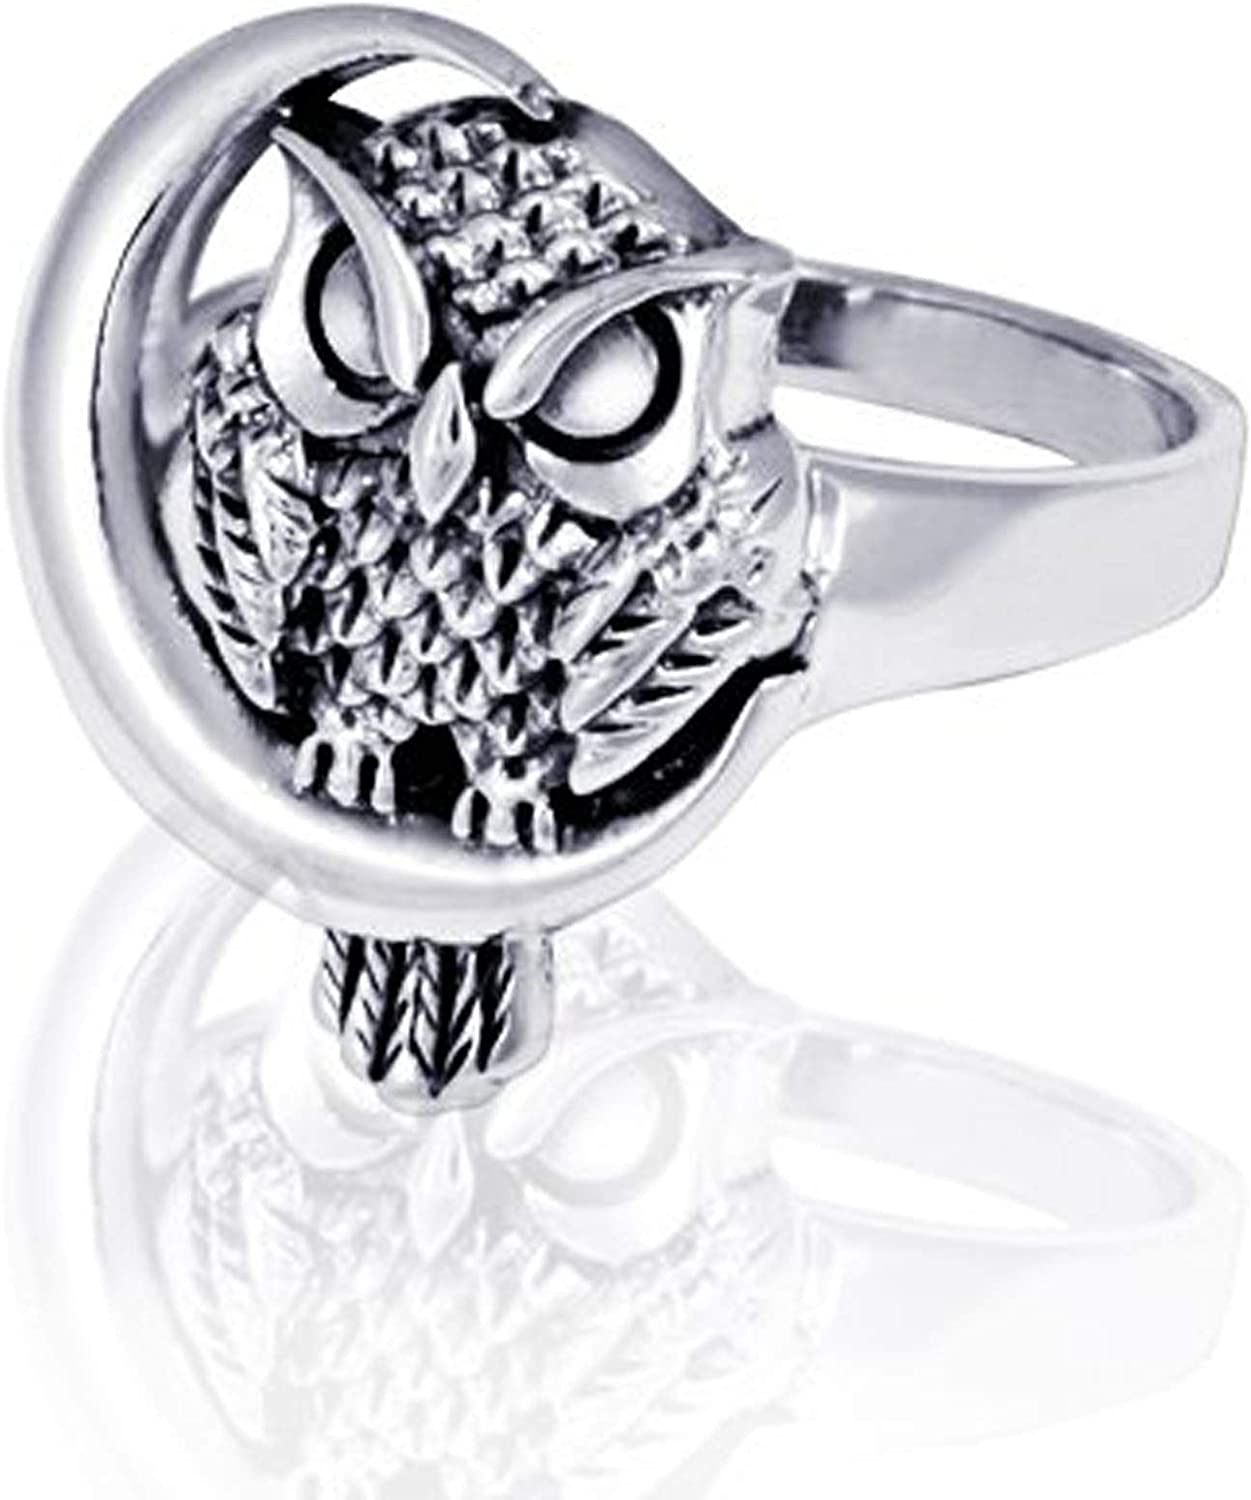 Crafts Avenue Sterling Silver 925 Oxidized Detailed Midnight Owl with Crescent Moon Ring Xmas Gifts Jewelry for Women /& Girls Size-4,5,6,7,8,9